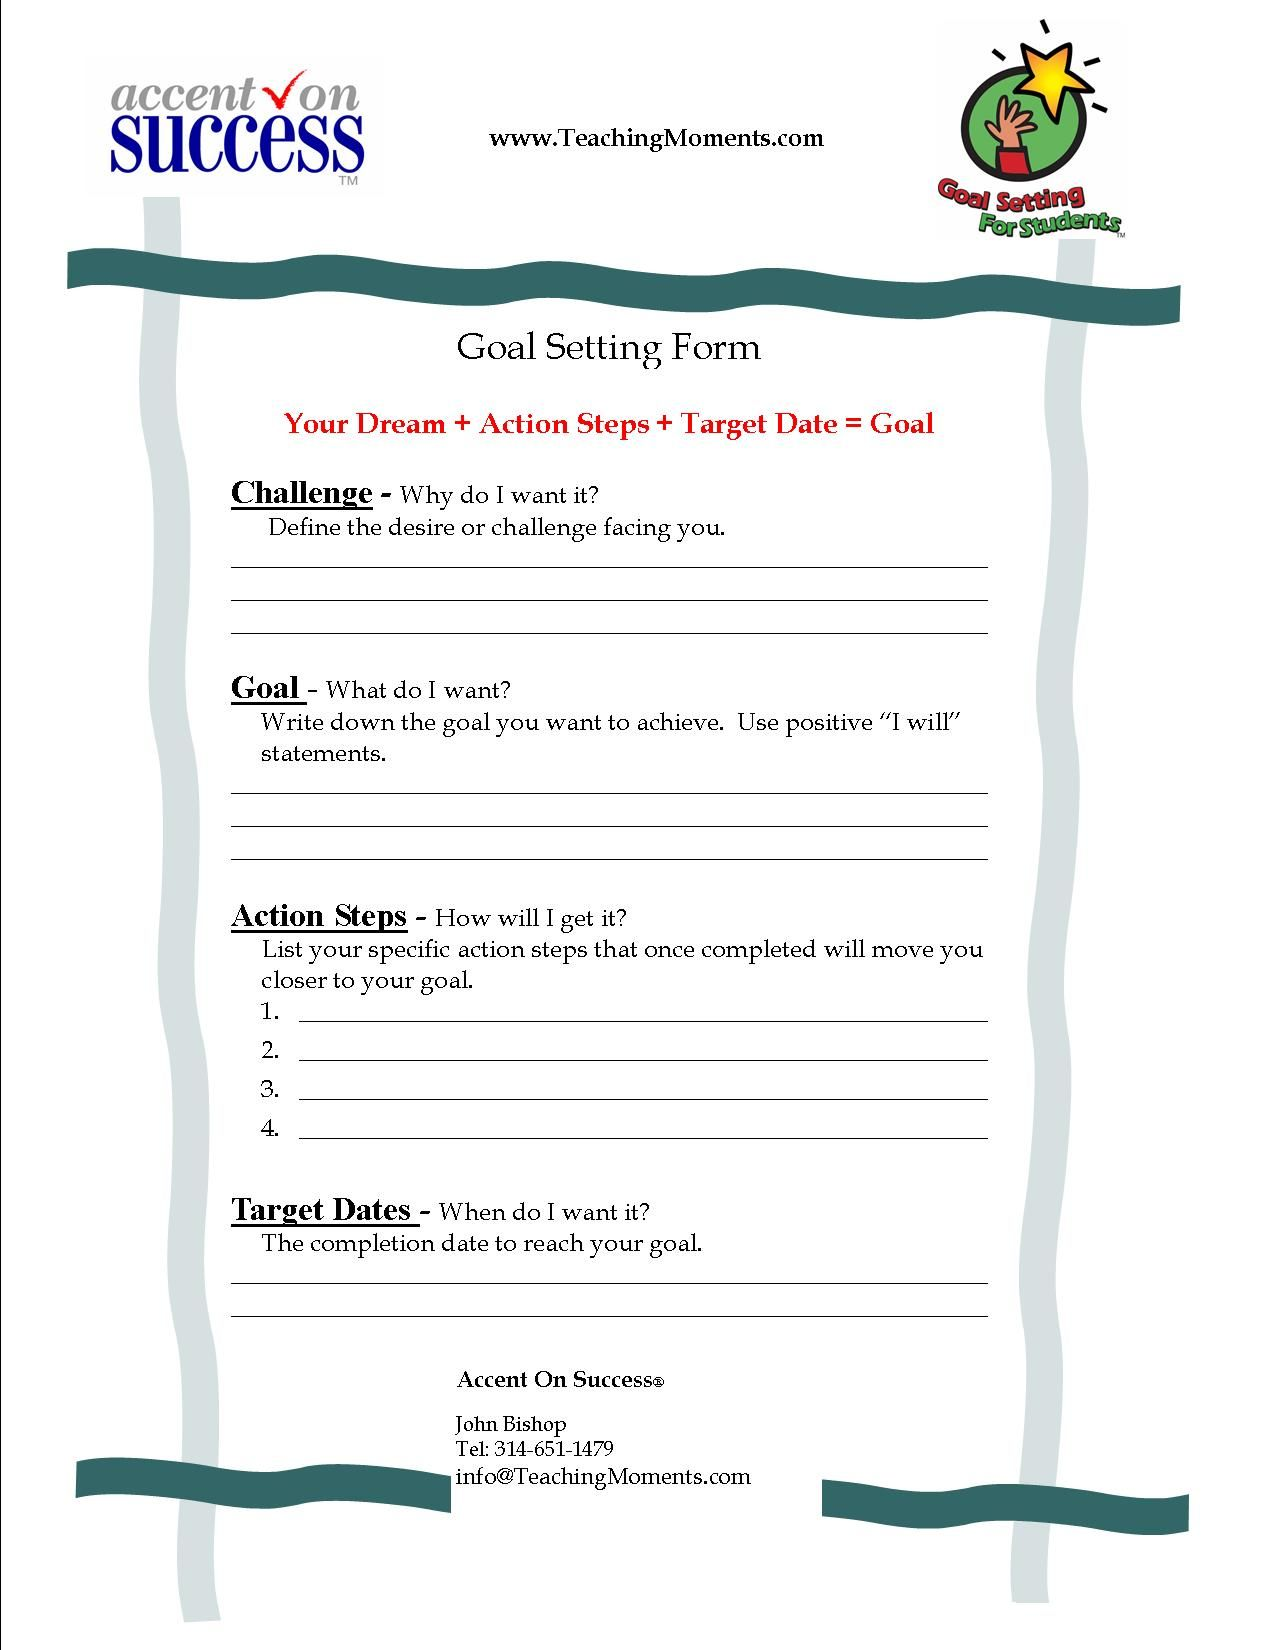 Goal Setting Worksheet Student goals, Goal setting for